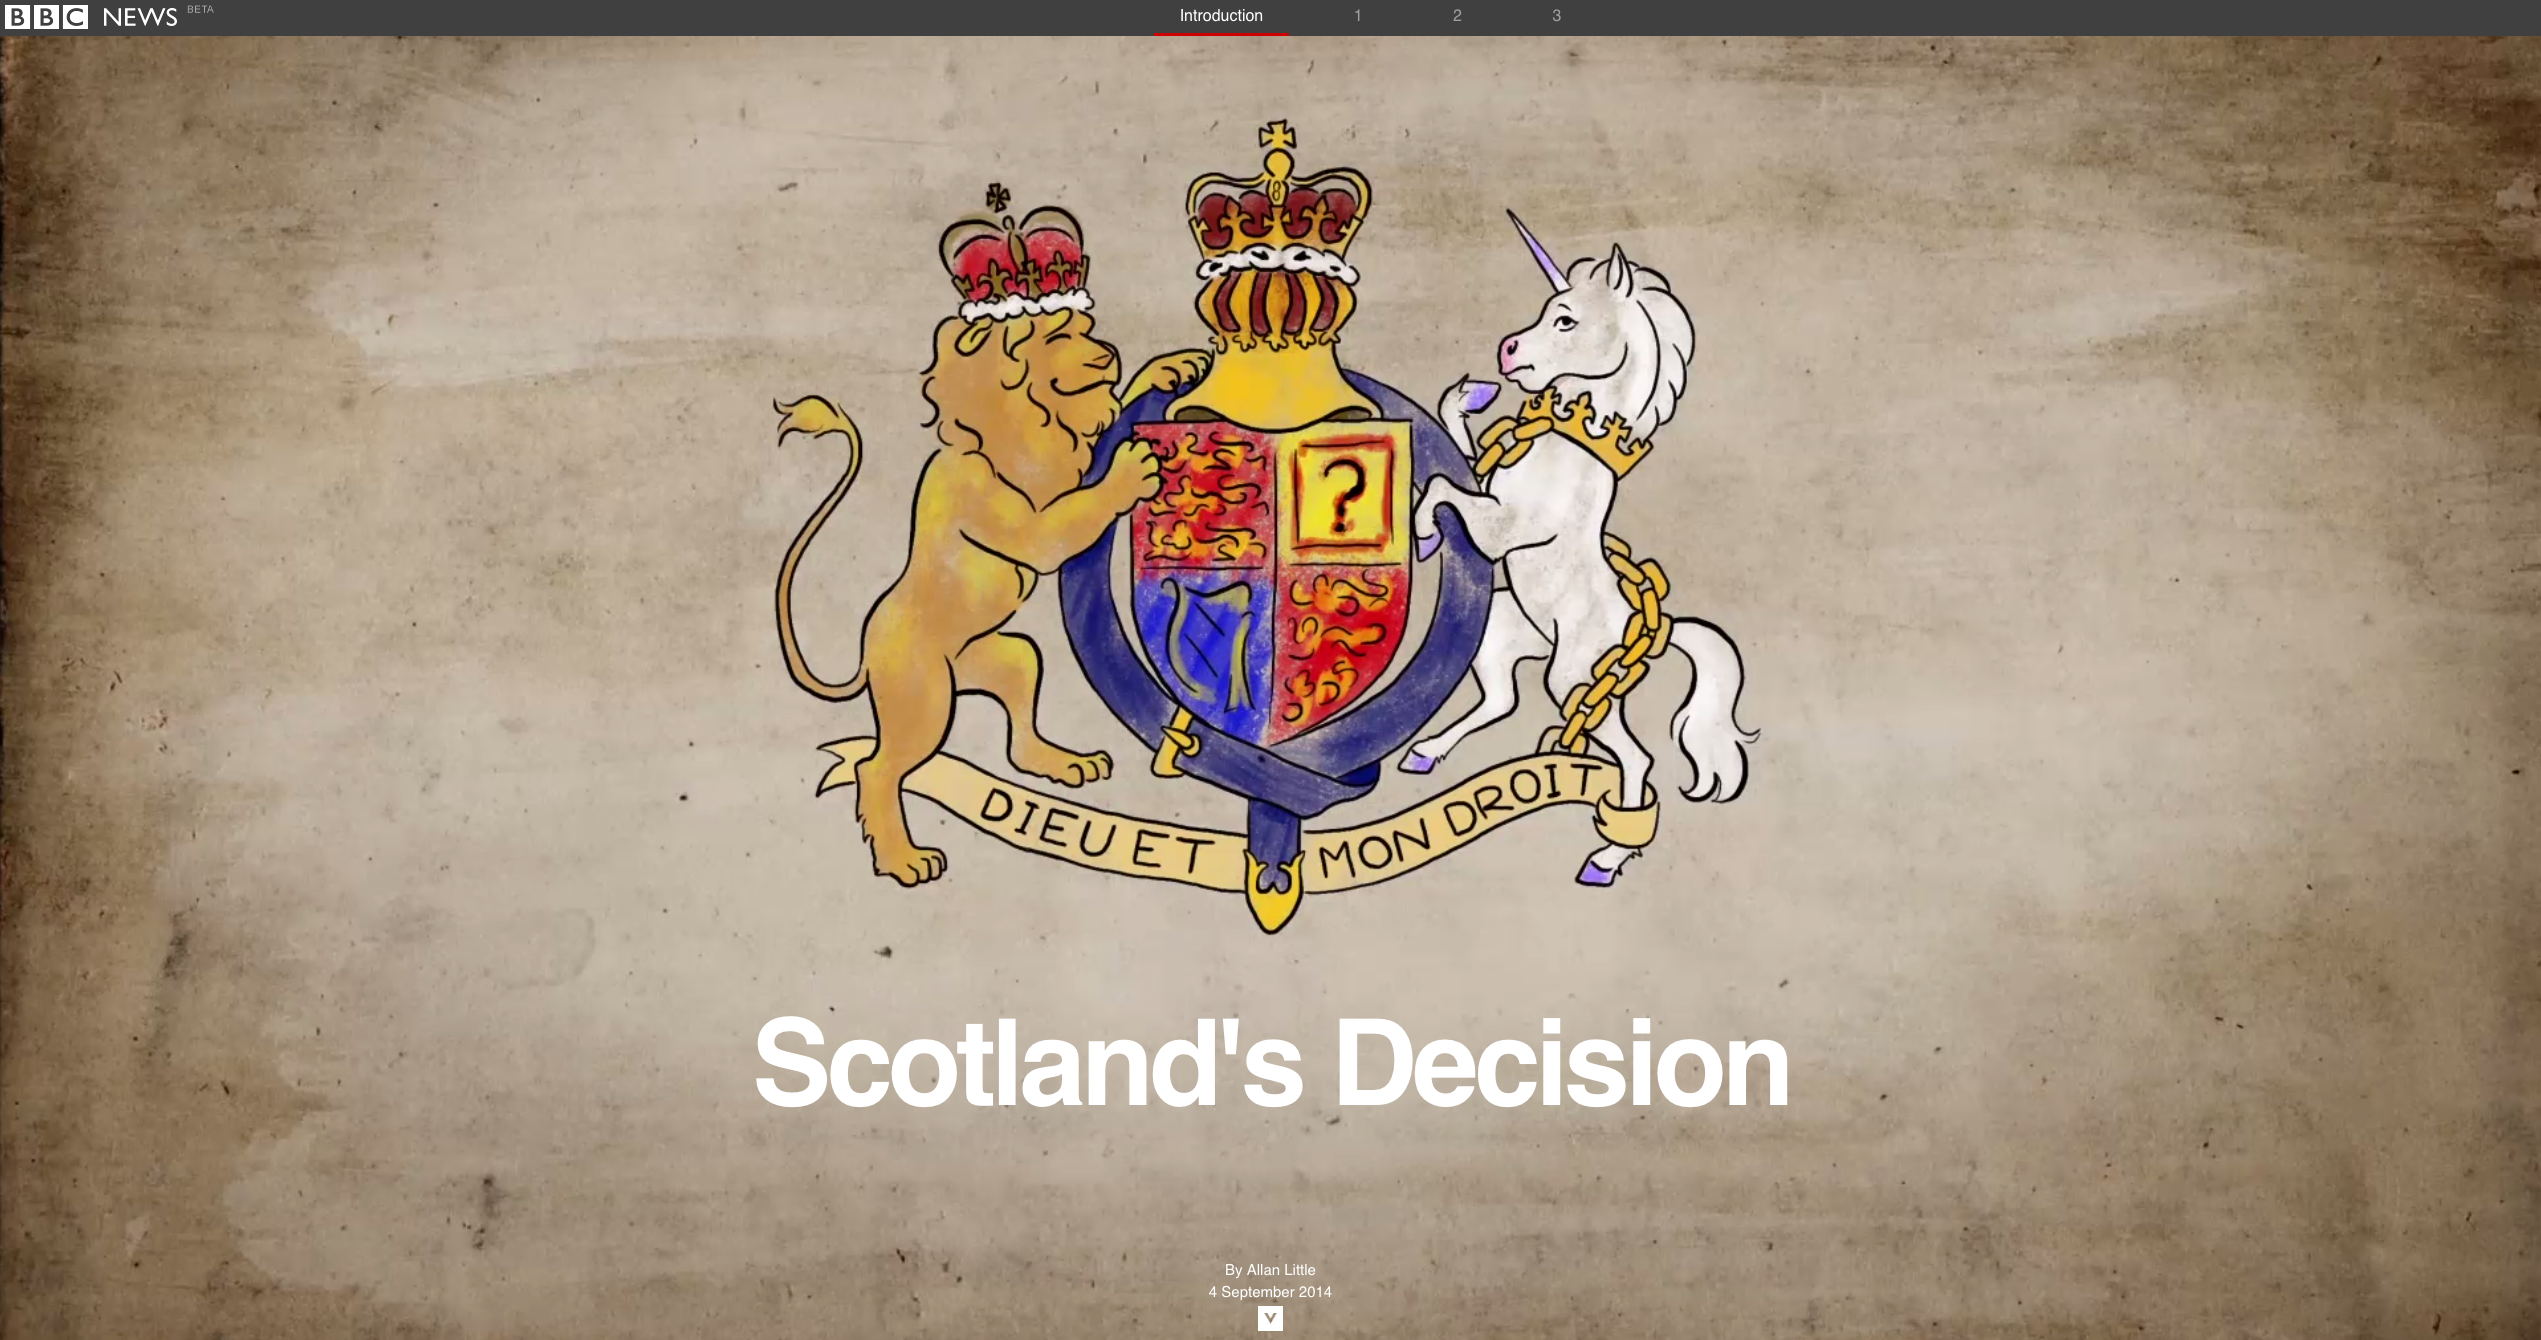 A Bbc News Immersive On The 2014 Scottish Referendum Explaining Some Of The Events Leading Up To This Historical Vote Scottish Referendum Scotland Bbc News